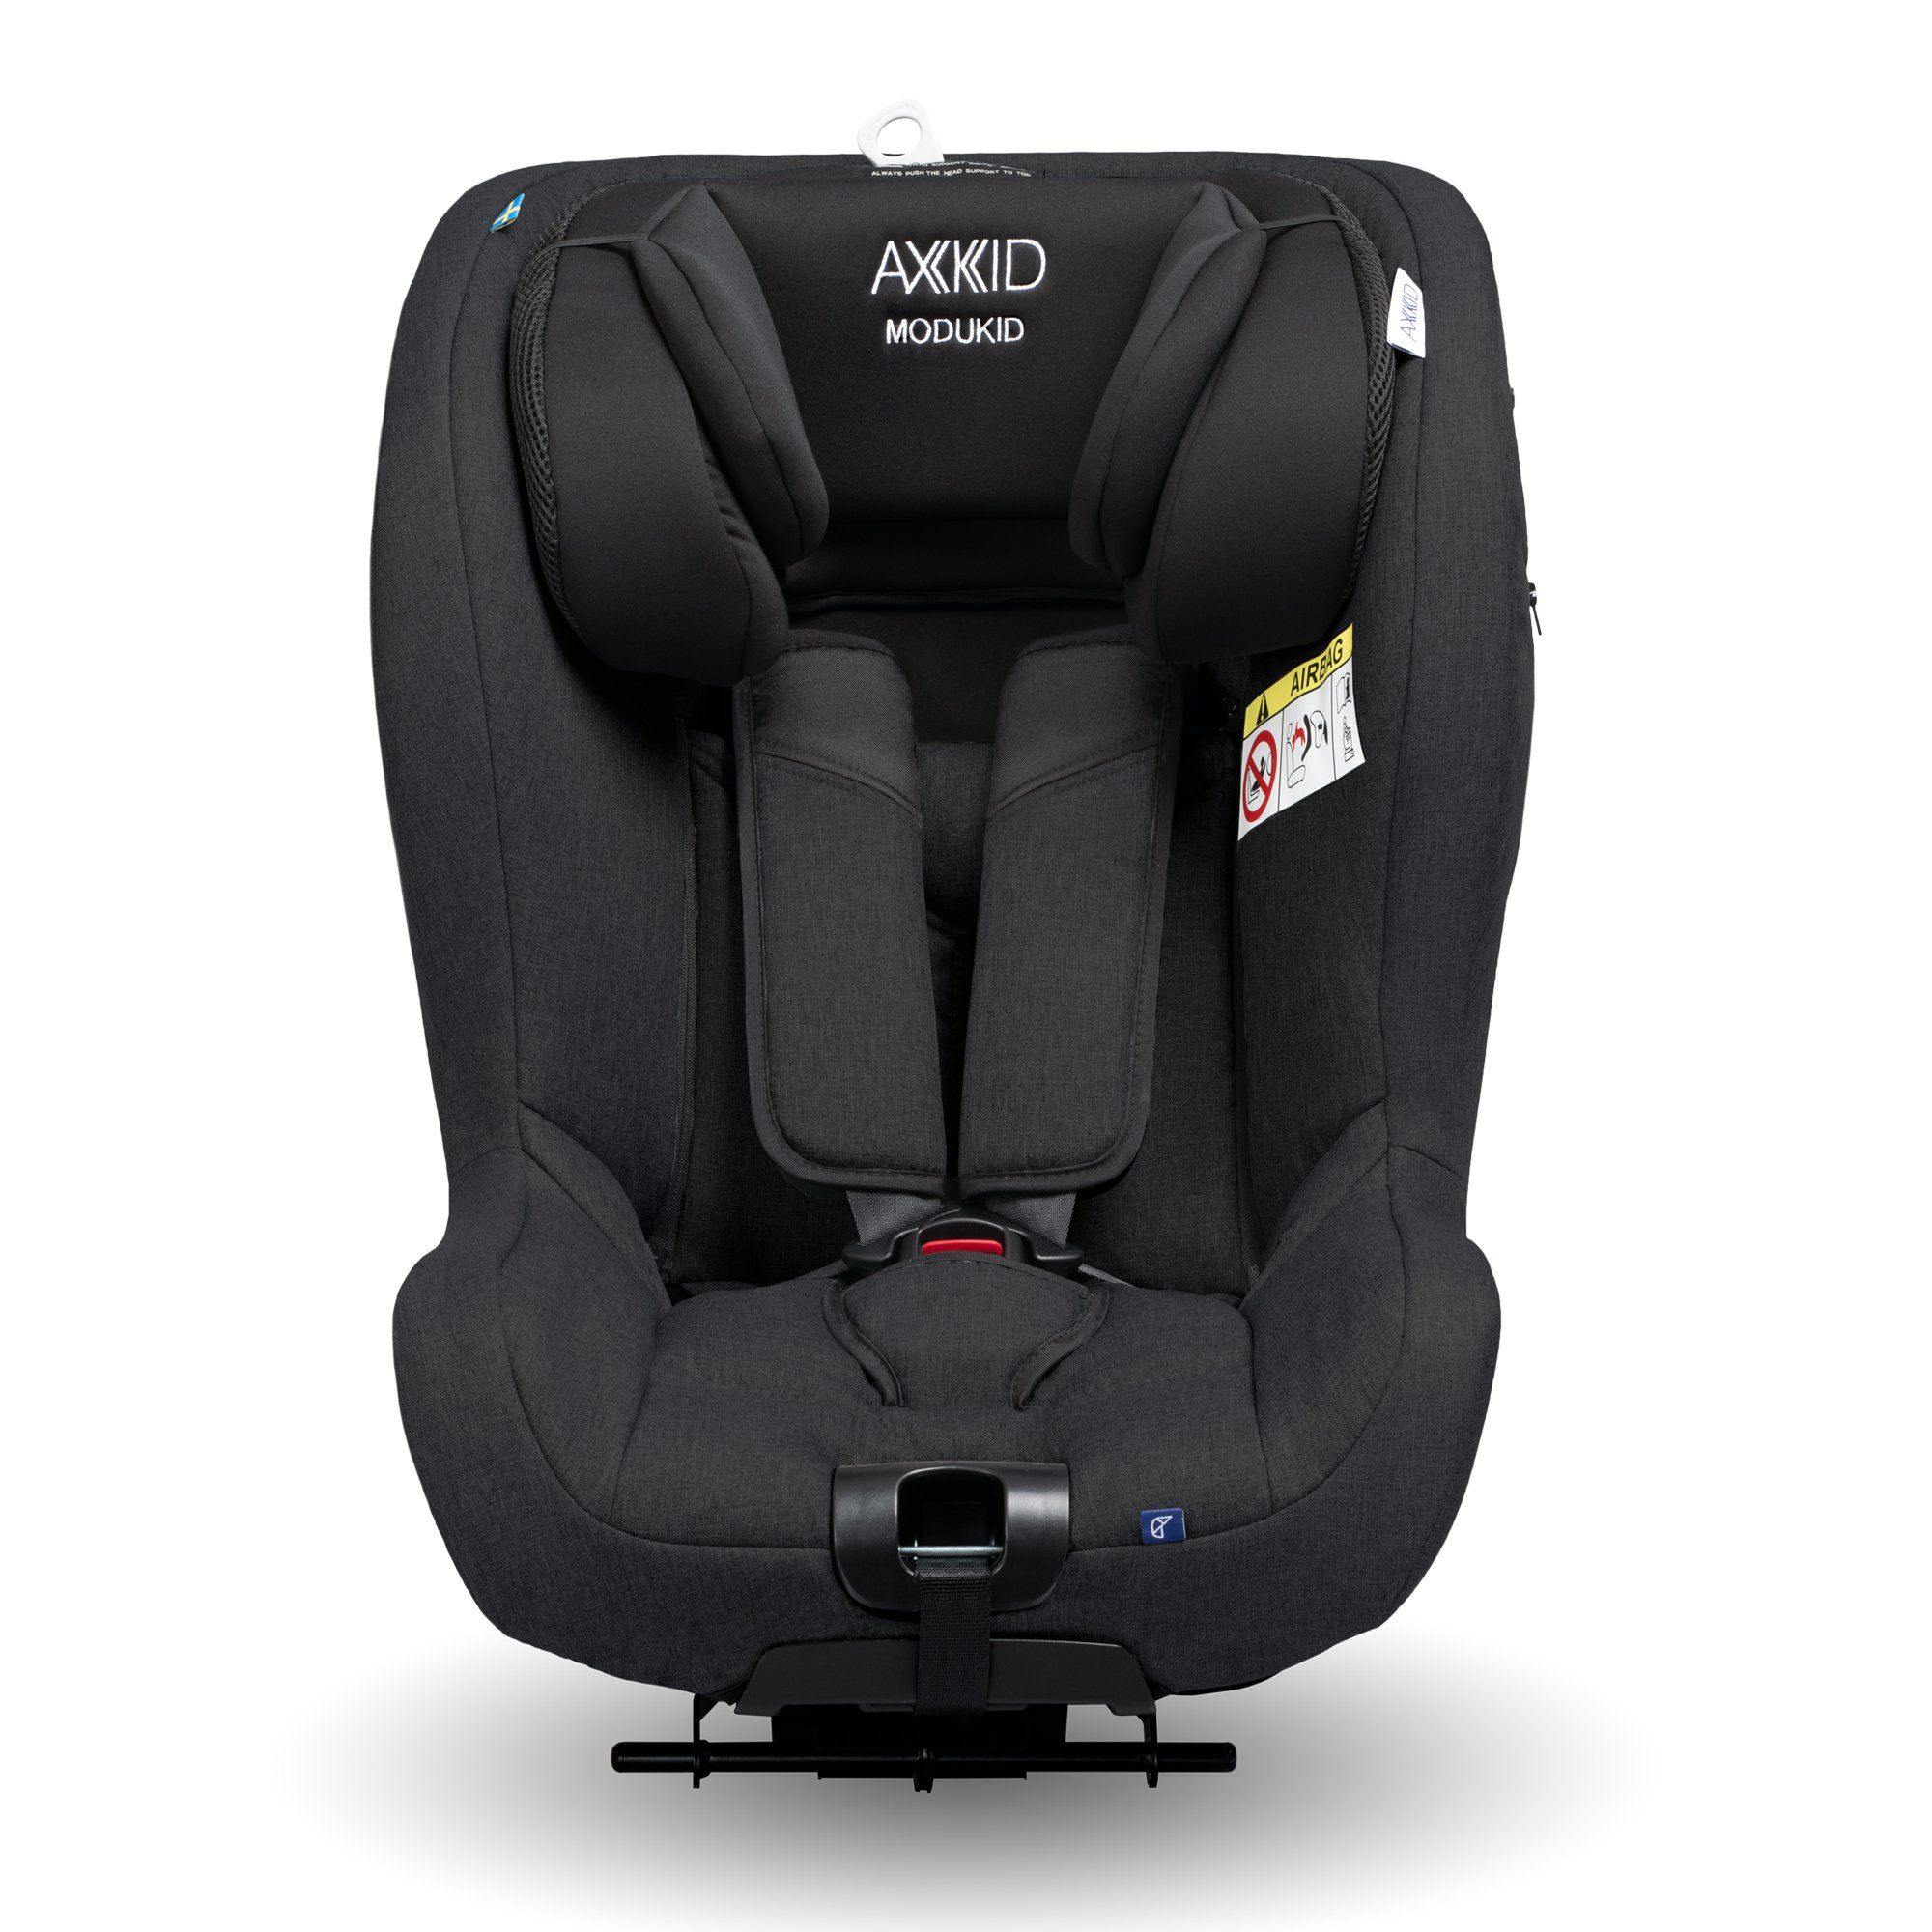 Axkid Modukid i-Size toddler car seat and base - Black - Pushchair Expert